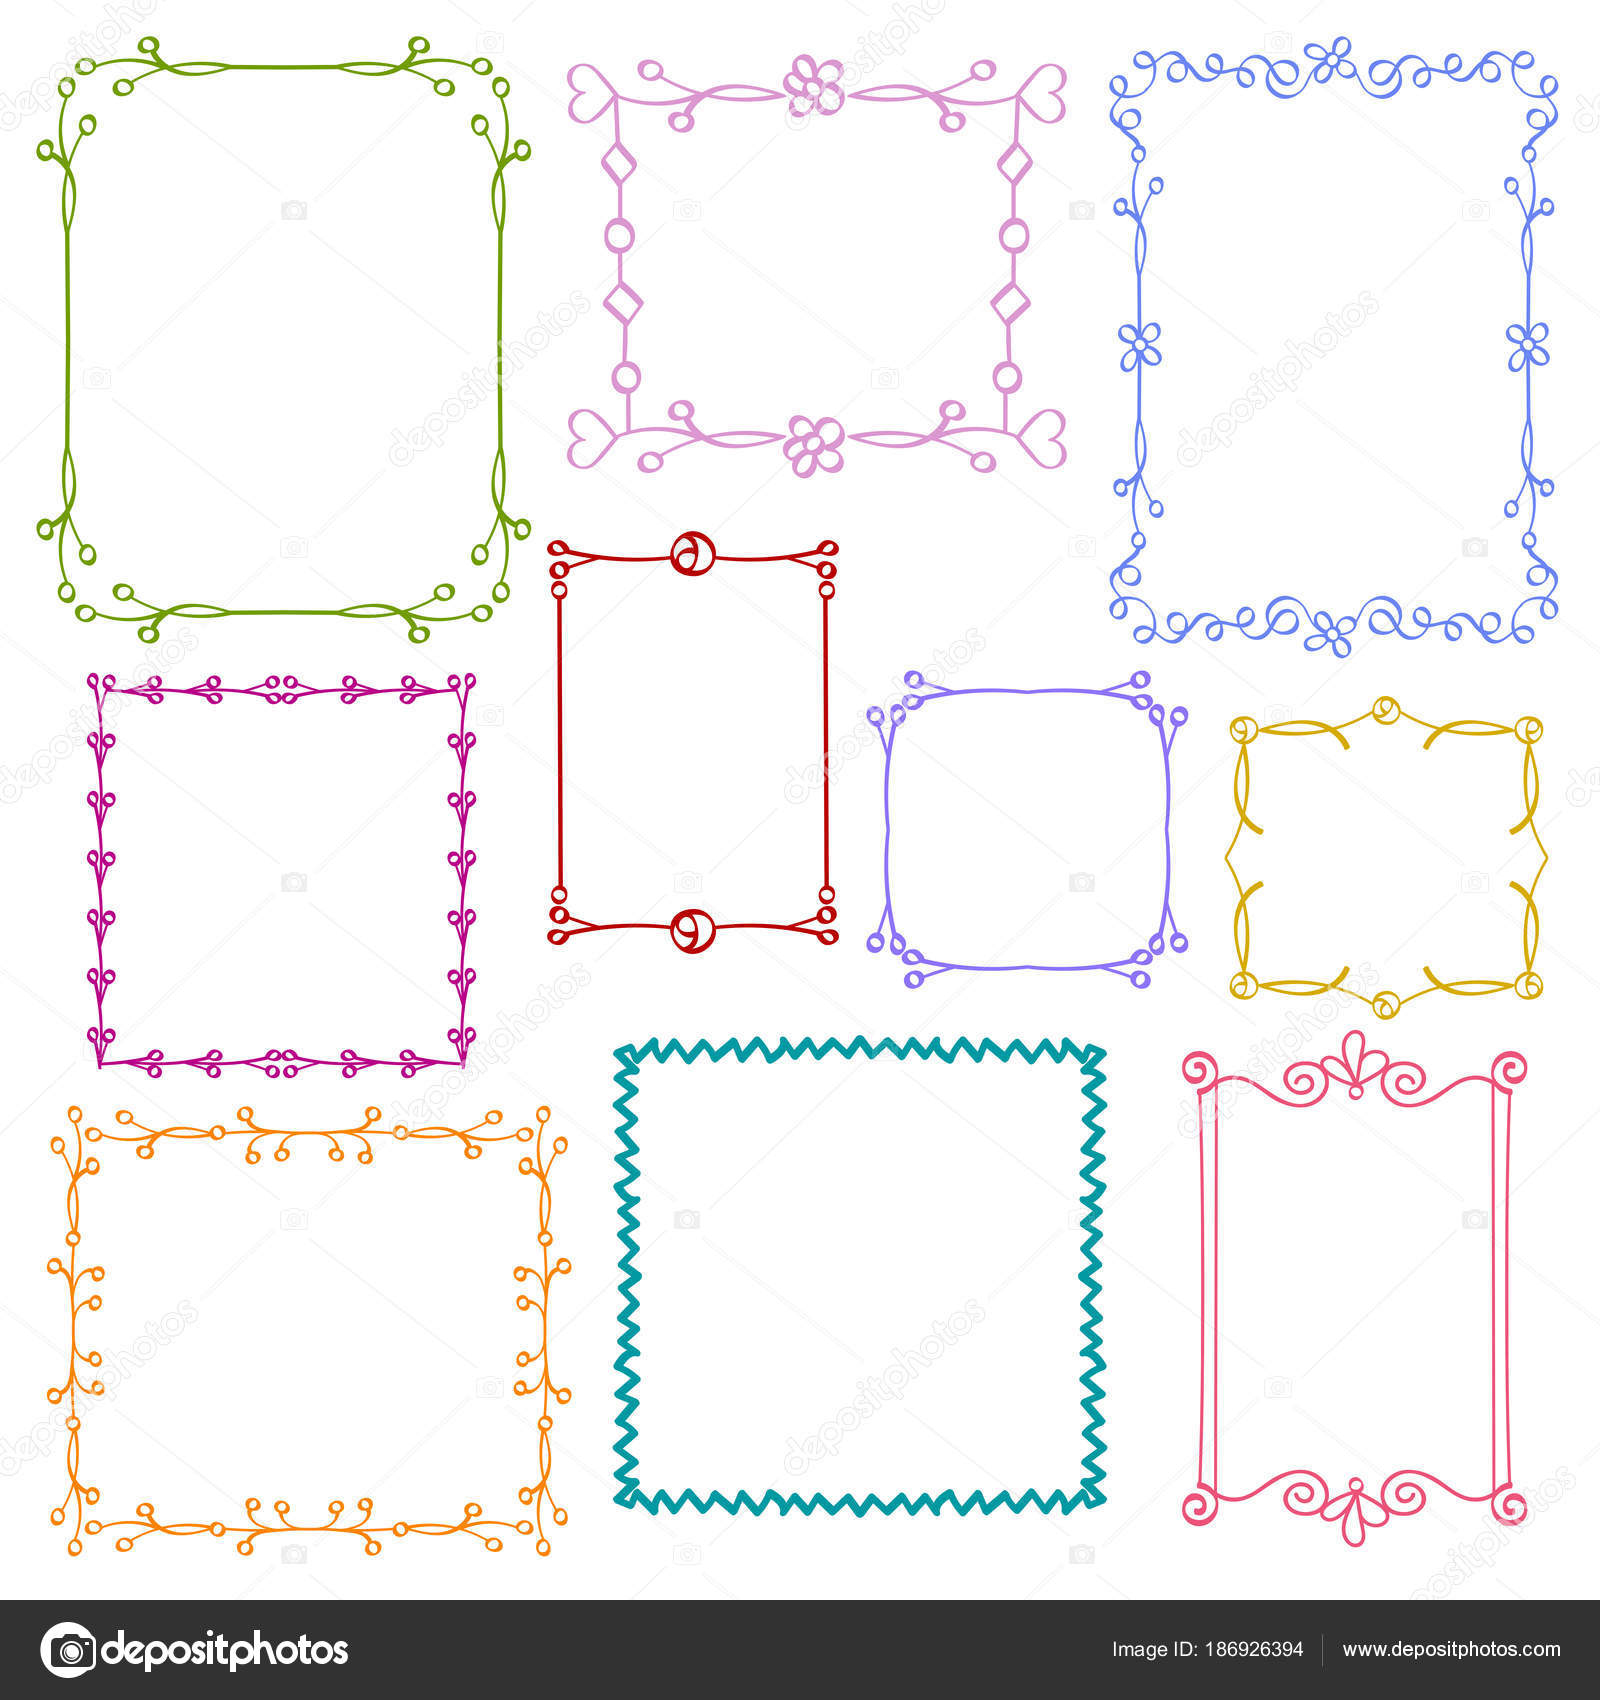 Babies and Kids photo frames vector set, Childrens drawing doodle ...